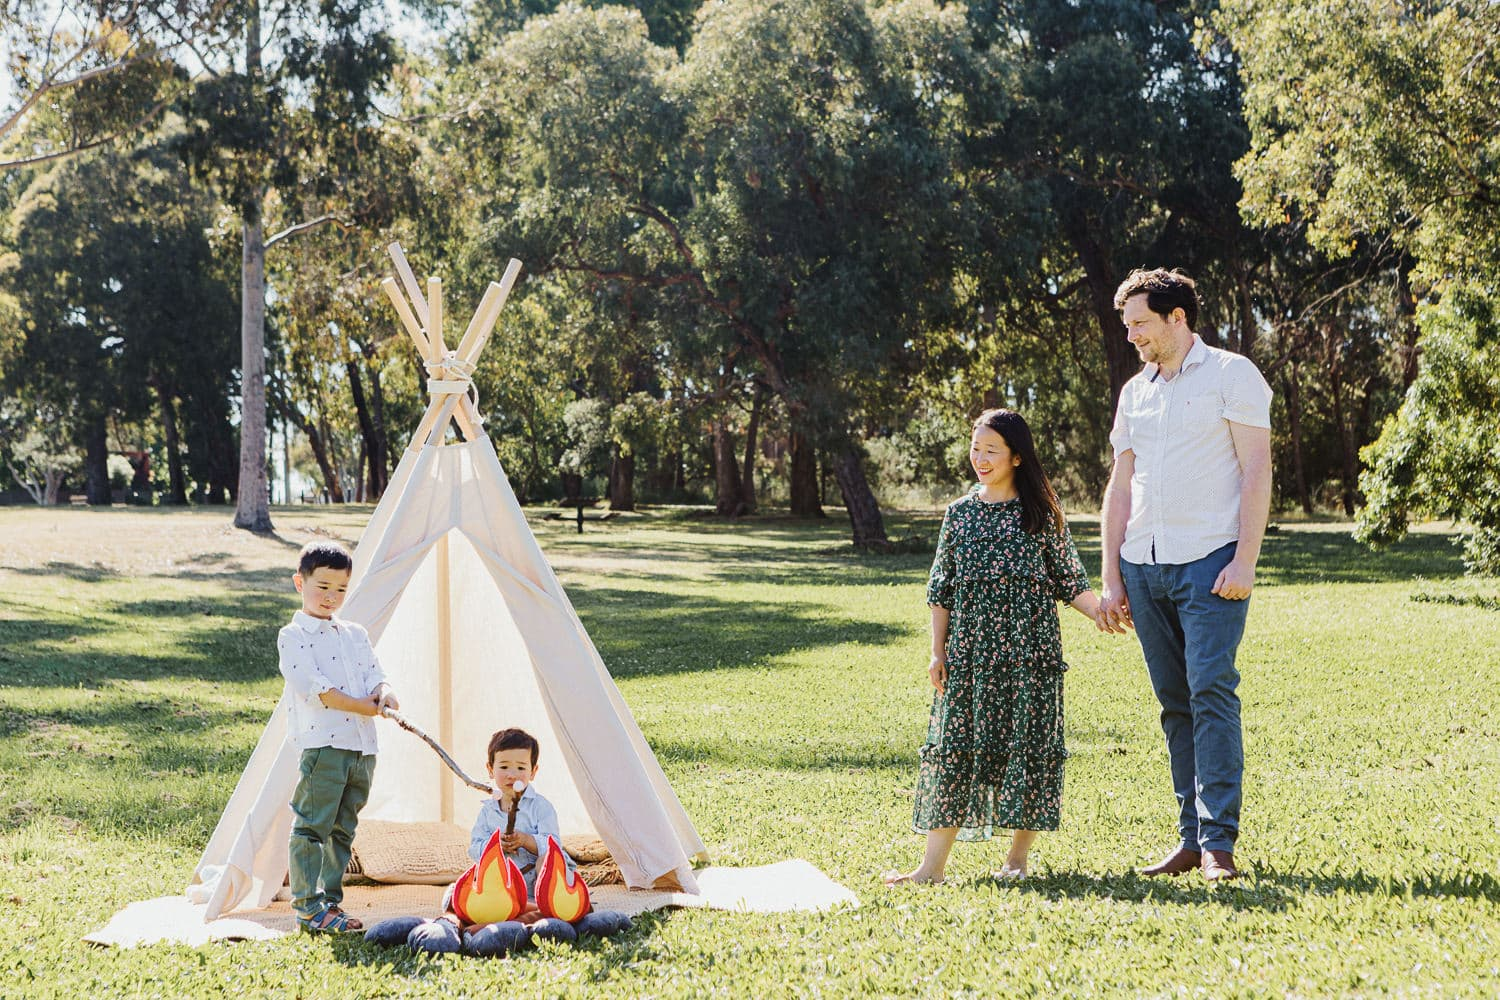 Mini Sessions for Families - Affordable Family Photography in melbourne - Family with Teepee - Creative Photo Kids and Families